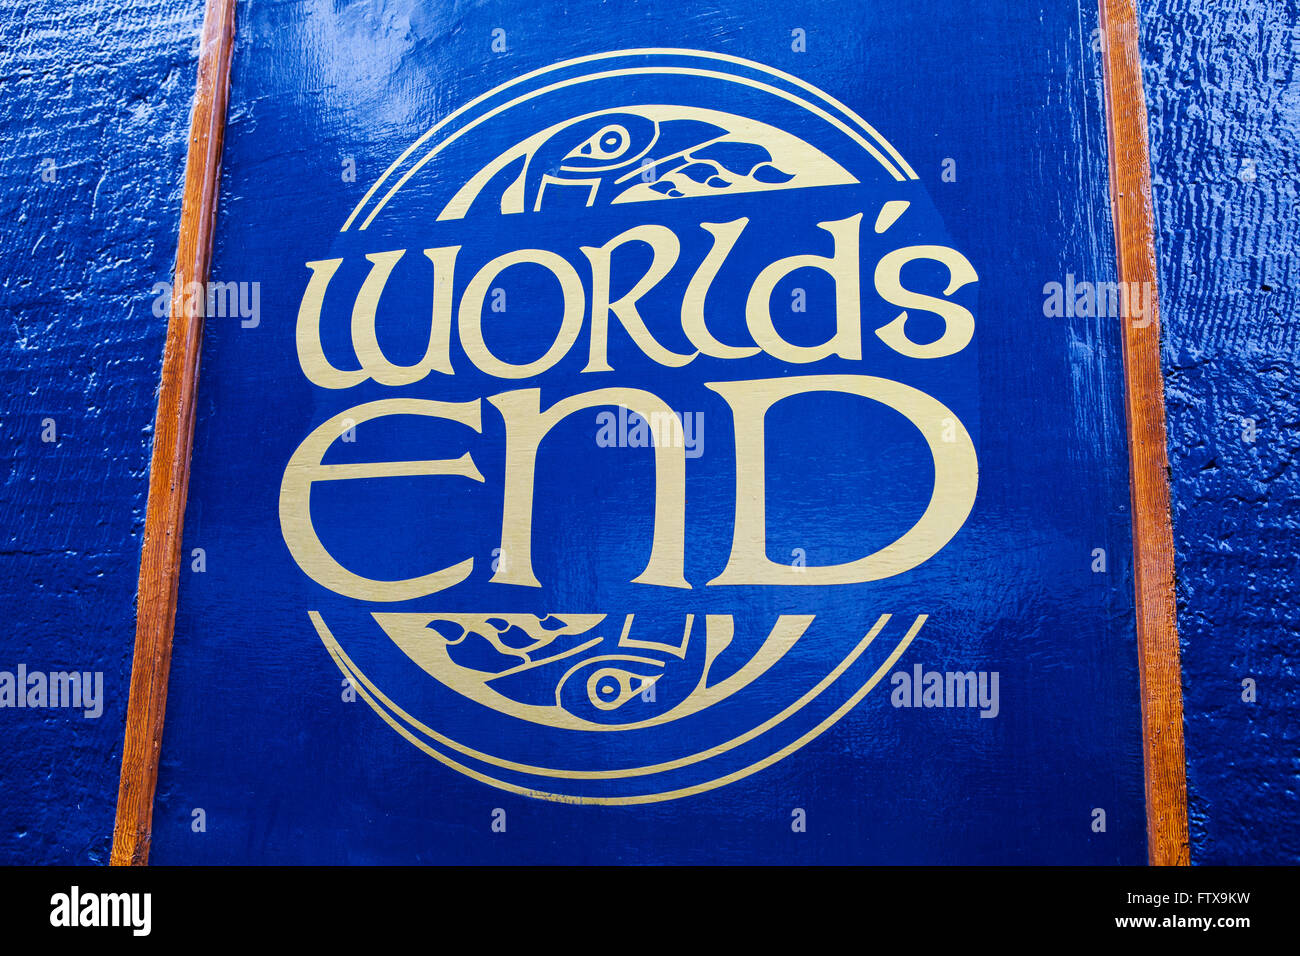 EDINBURGH, SCOTLAND - MARCH 12TH 2016: The sign for the Worlds End public house on the Royal Mile in Edinburgh, Stock Photo